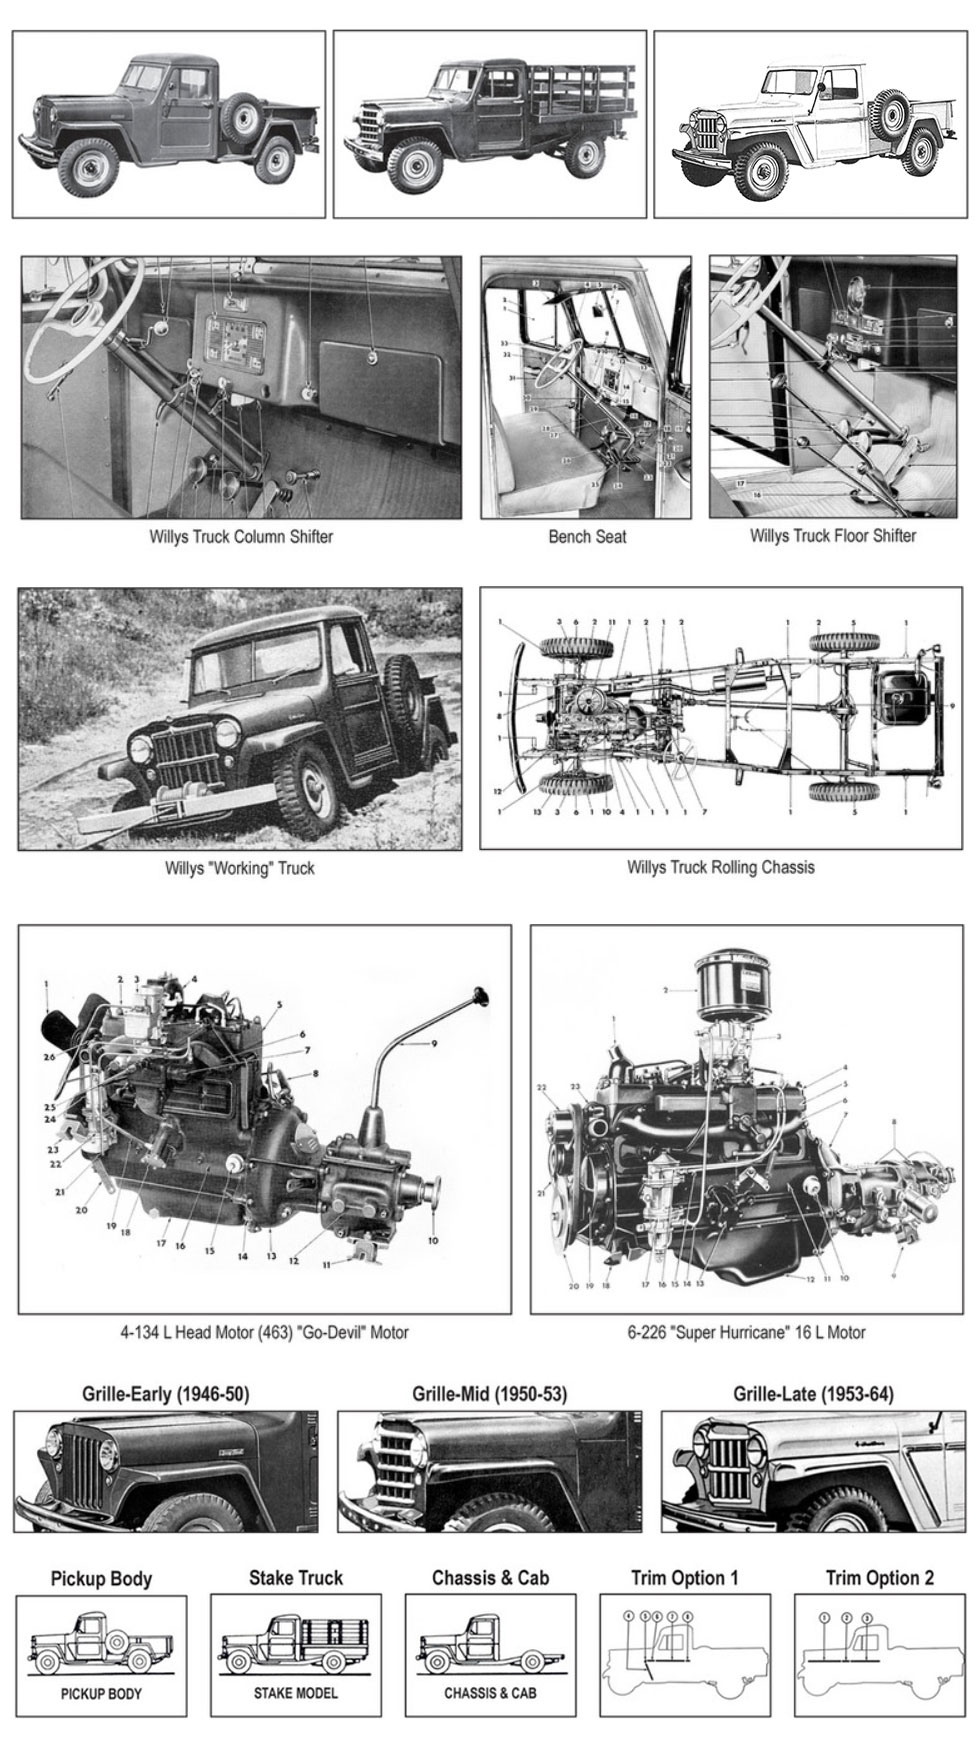 medium resolution of willys truck details